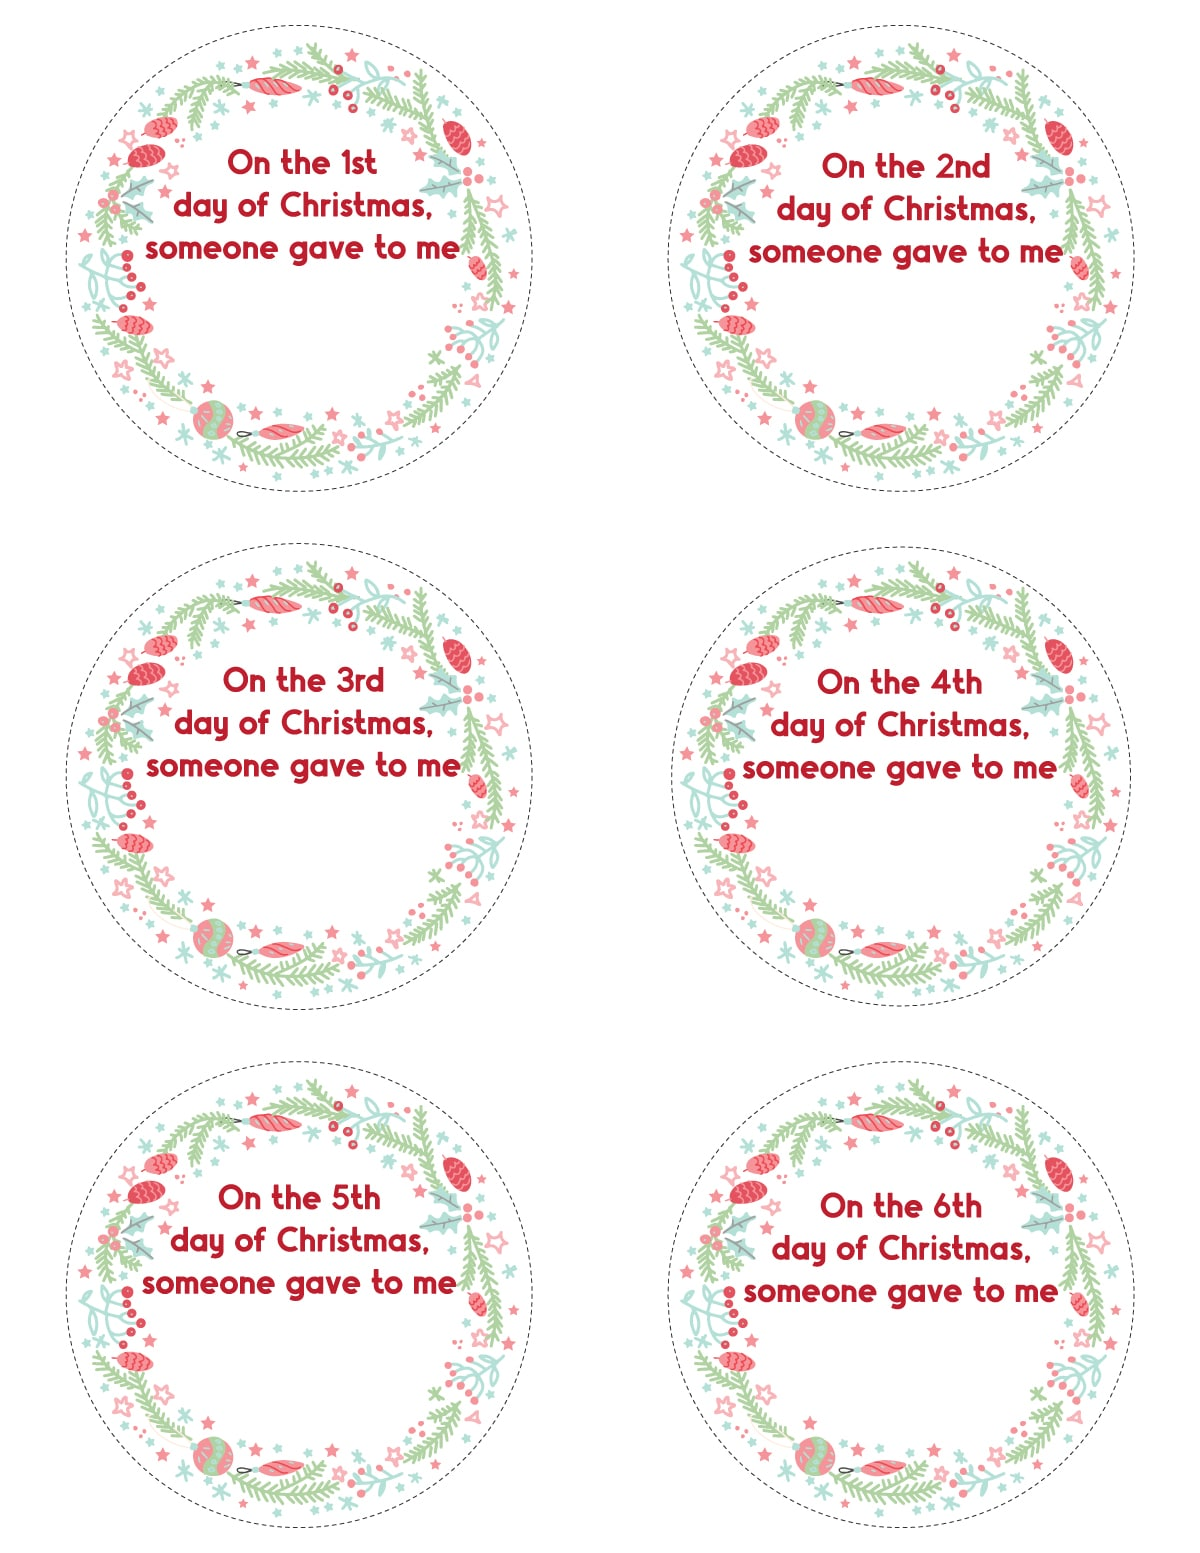 Blank 12 days of Christmas tags